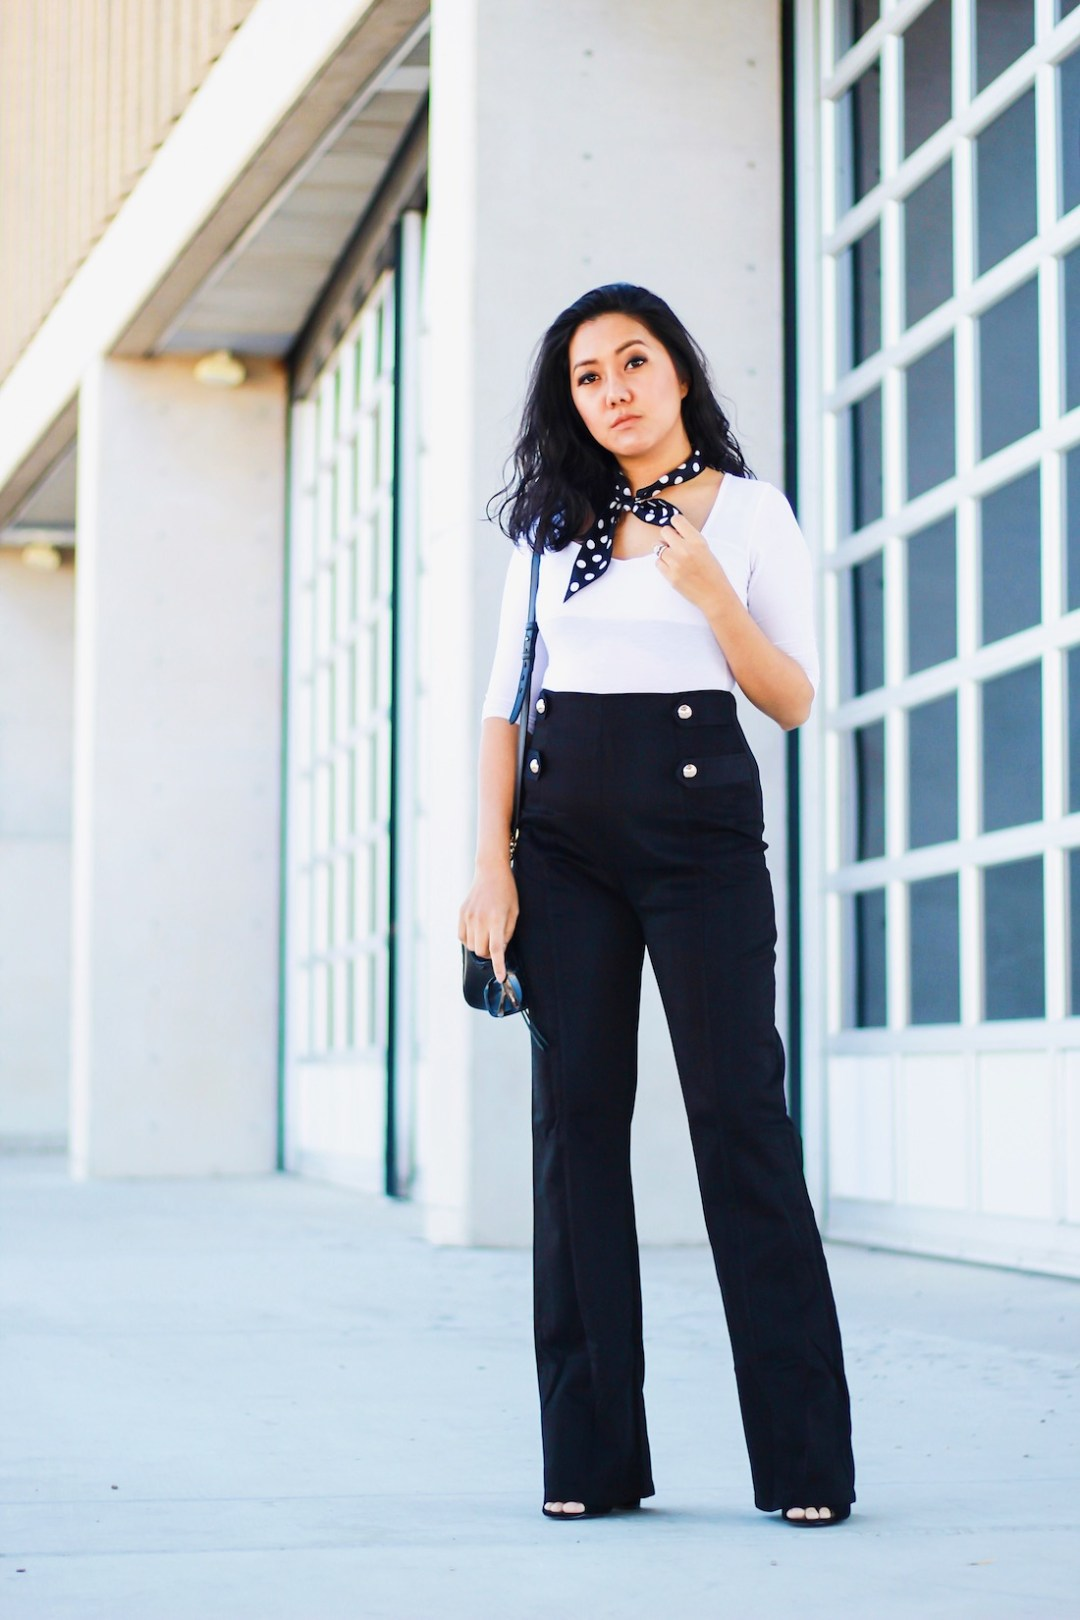 Spring Outfit Ideas | Transform to A Spring Look One Easy Tip Three Ways | Allaboutgoodvibes.com | Instagram @thevibescloset | Molly Larsen | Fashion and Lifestyle Blogger